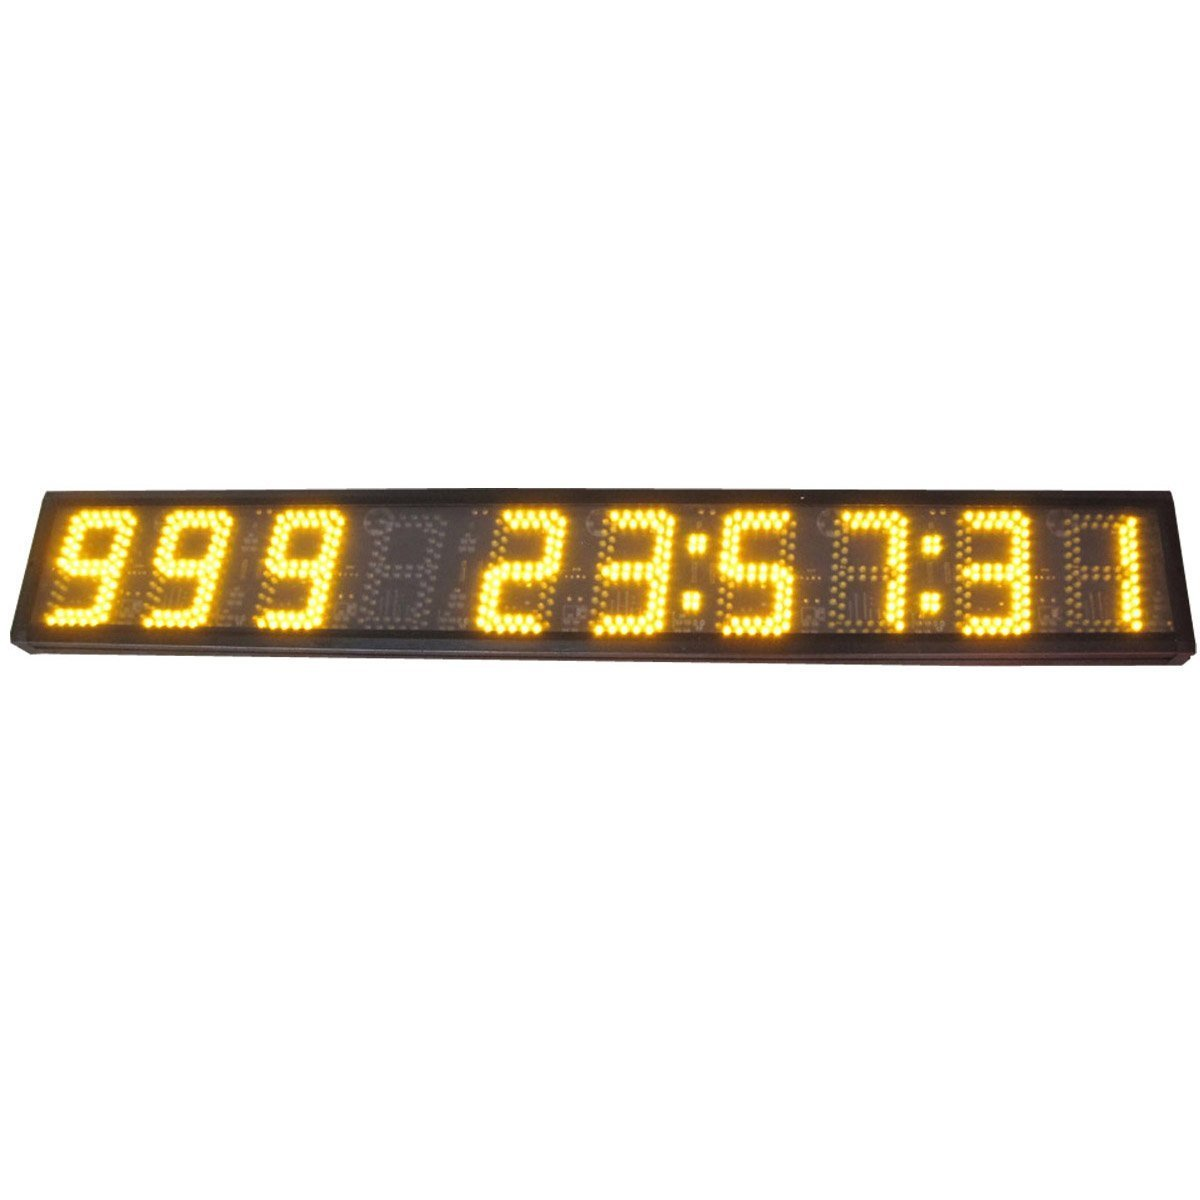 AZOOU Large 5-inch 9 Digits LED Days Countdown/up Clock Days Event Timer For Race Games With IR Remote Control Yellow Color